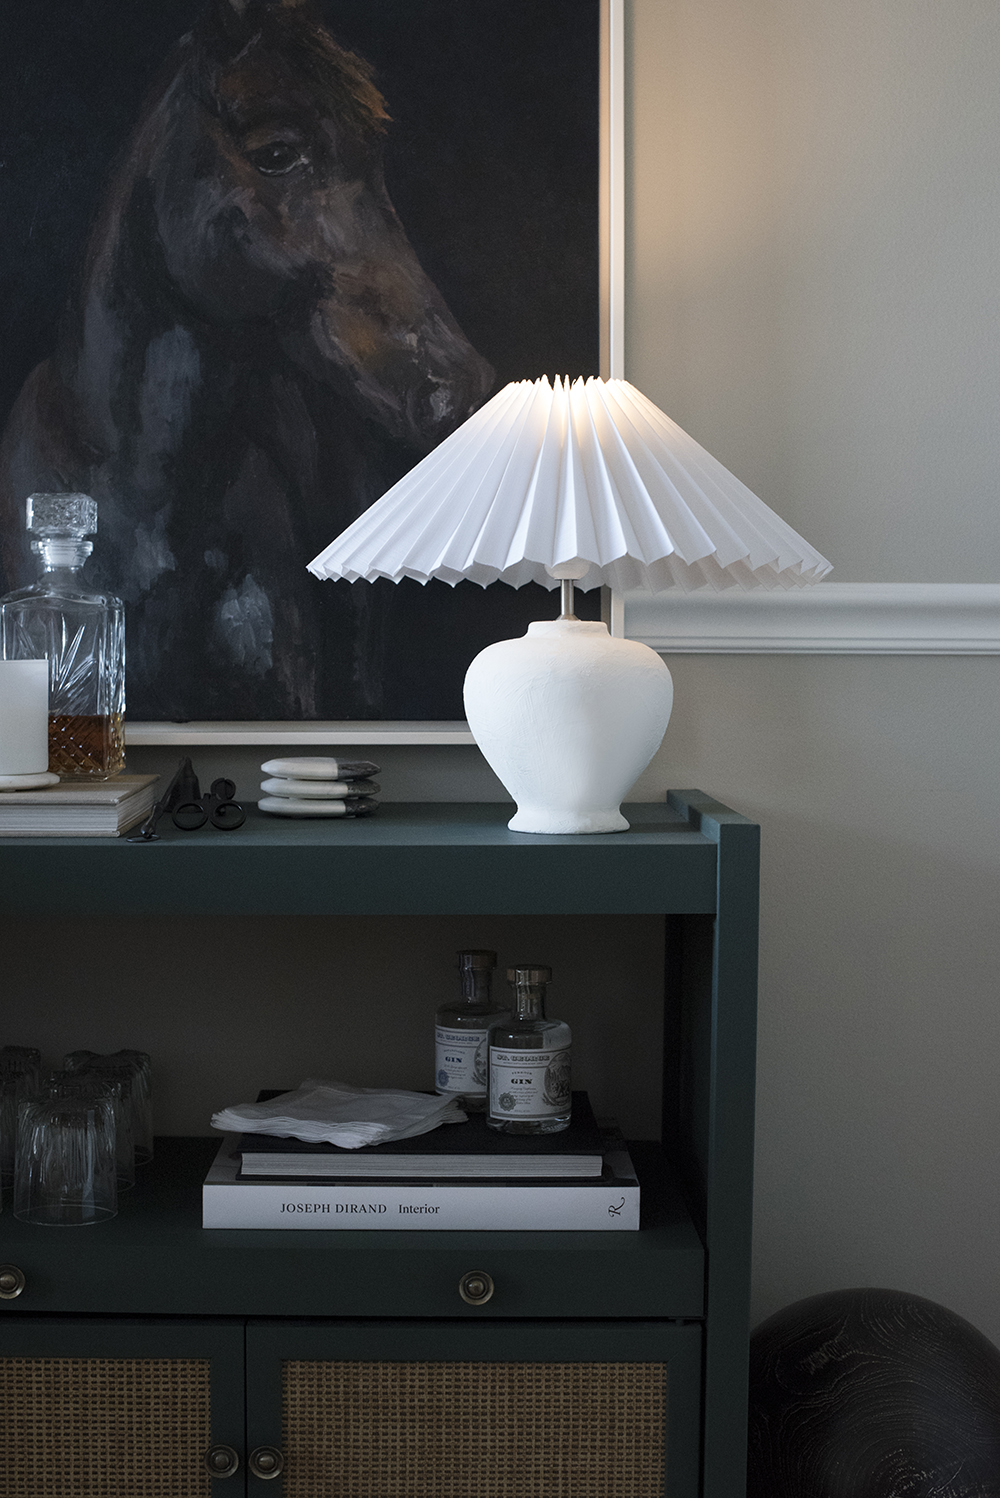 Best of Etsy : Vintage Table Lamps - roomfortuesday.com